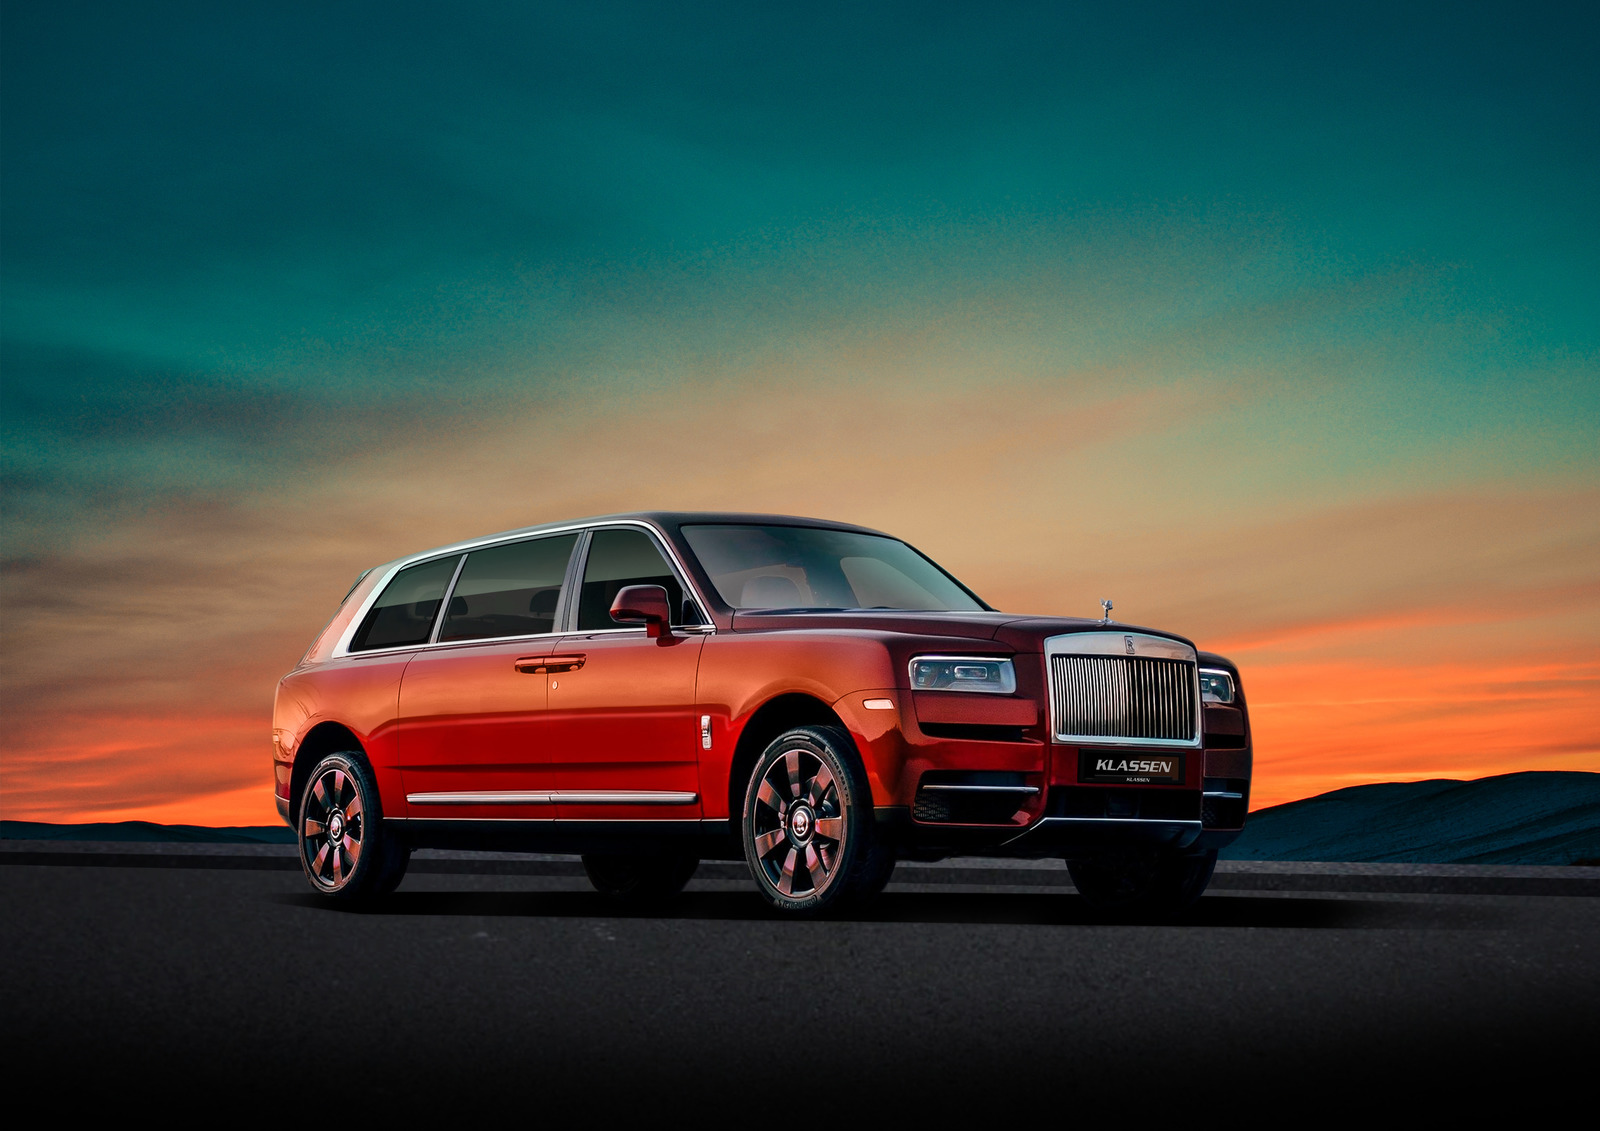 Rolls Royce Cullinan Armored and Stretched cars +580mm